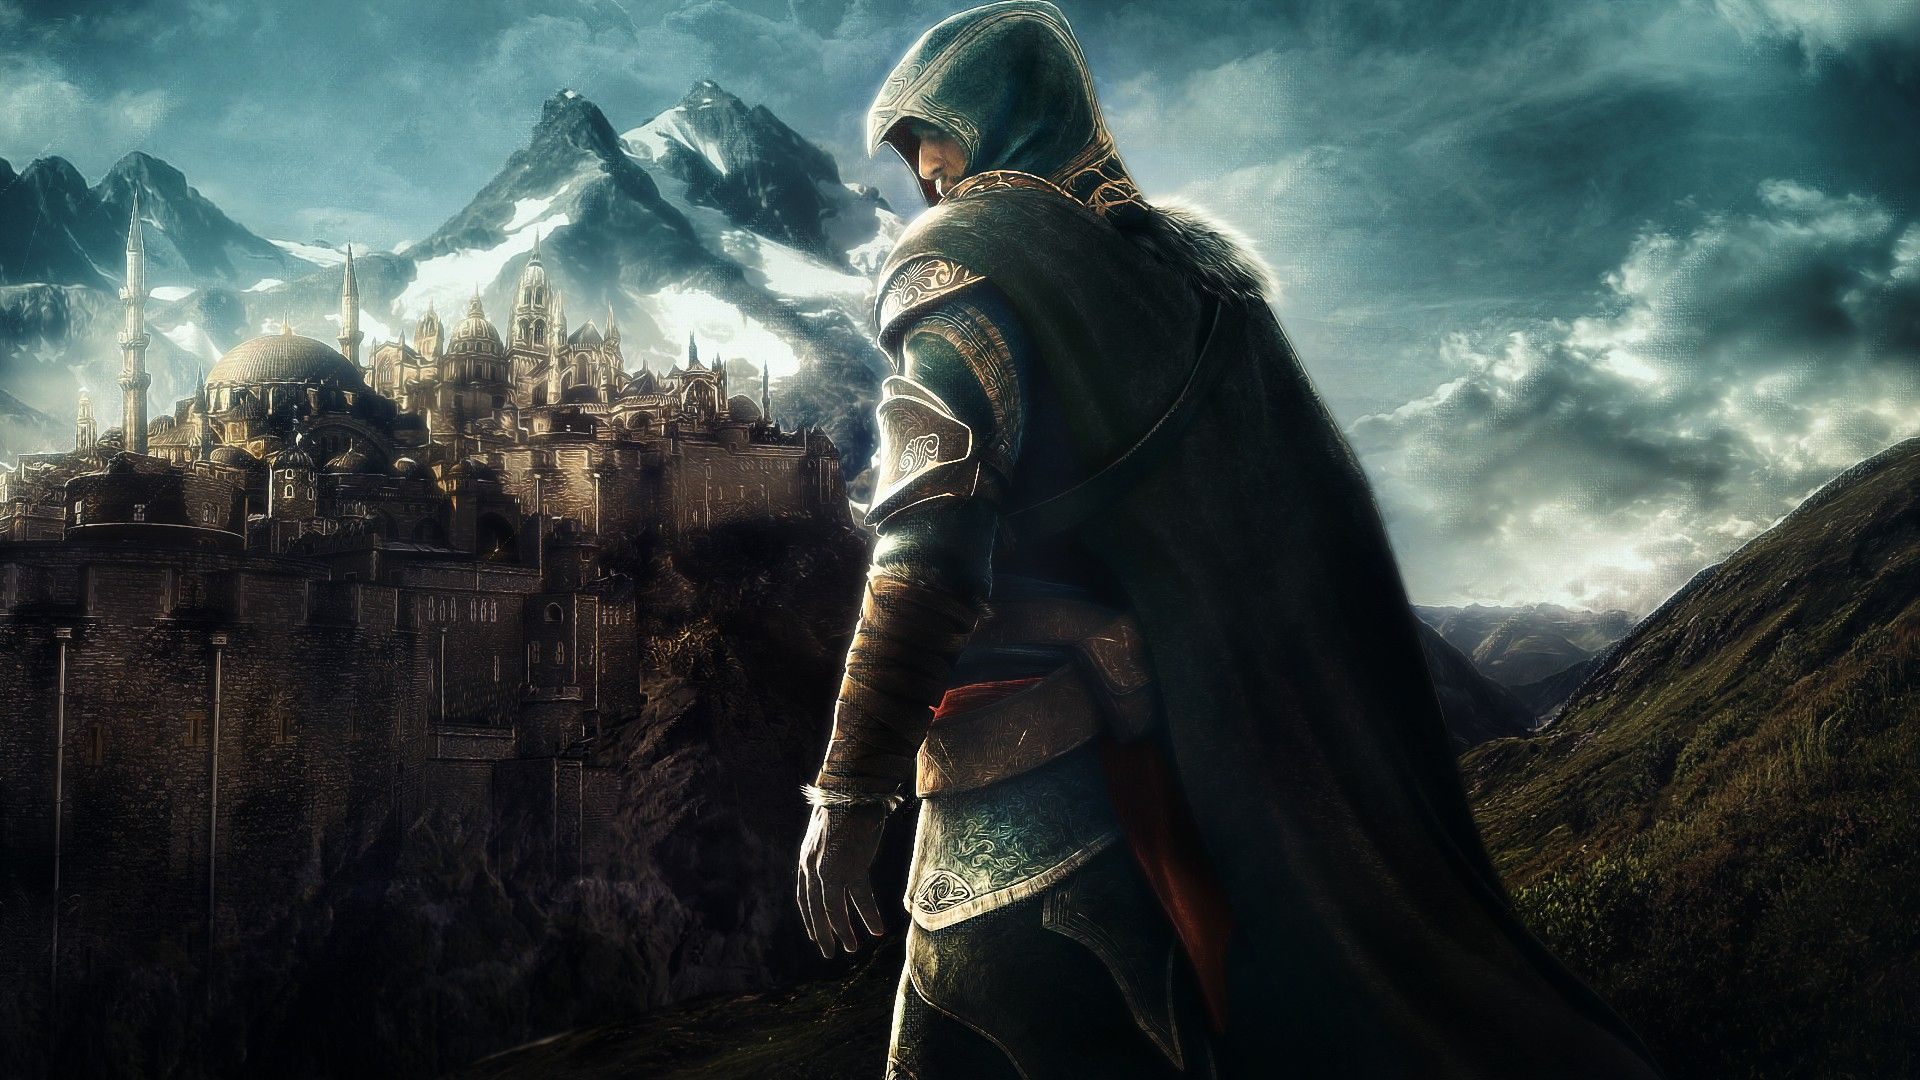 Wallpapers Of Games